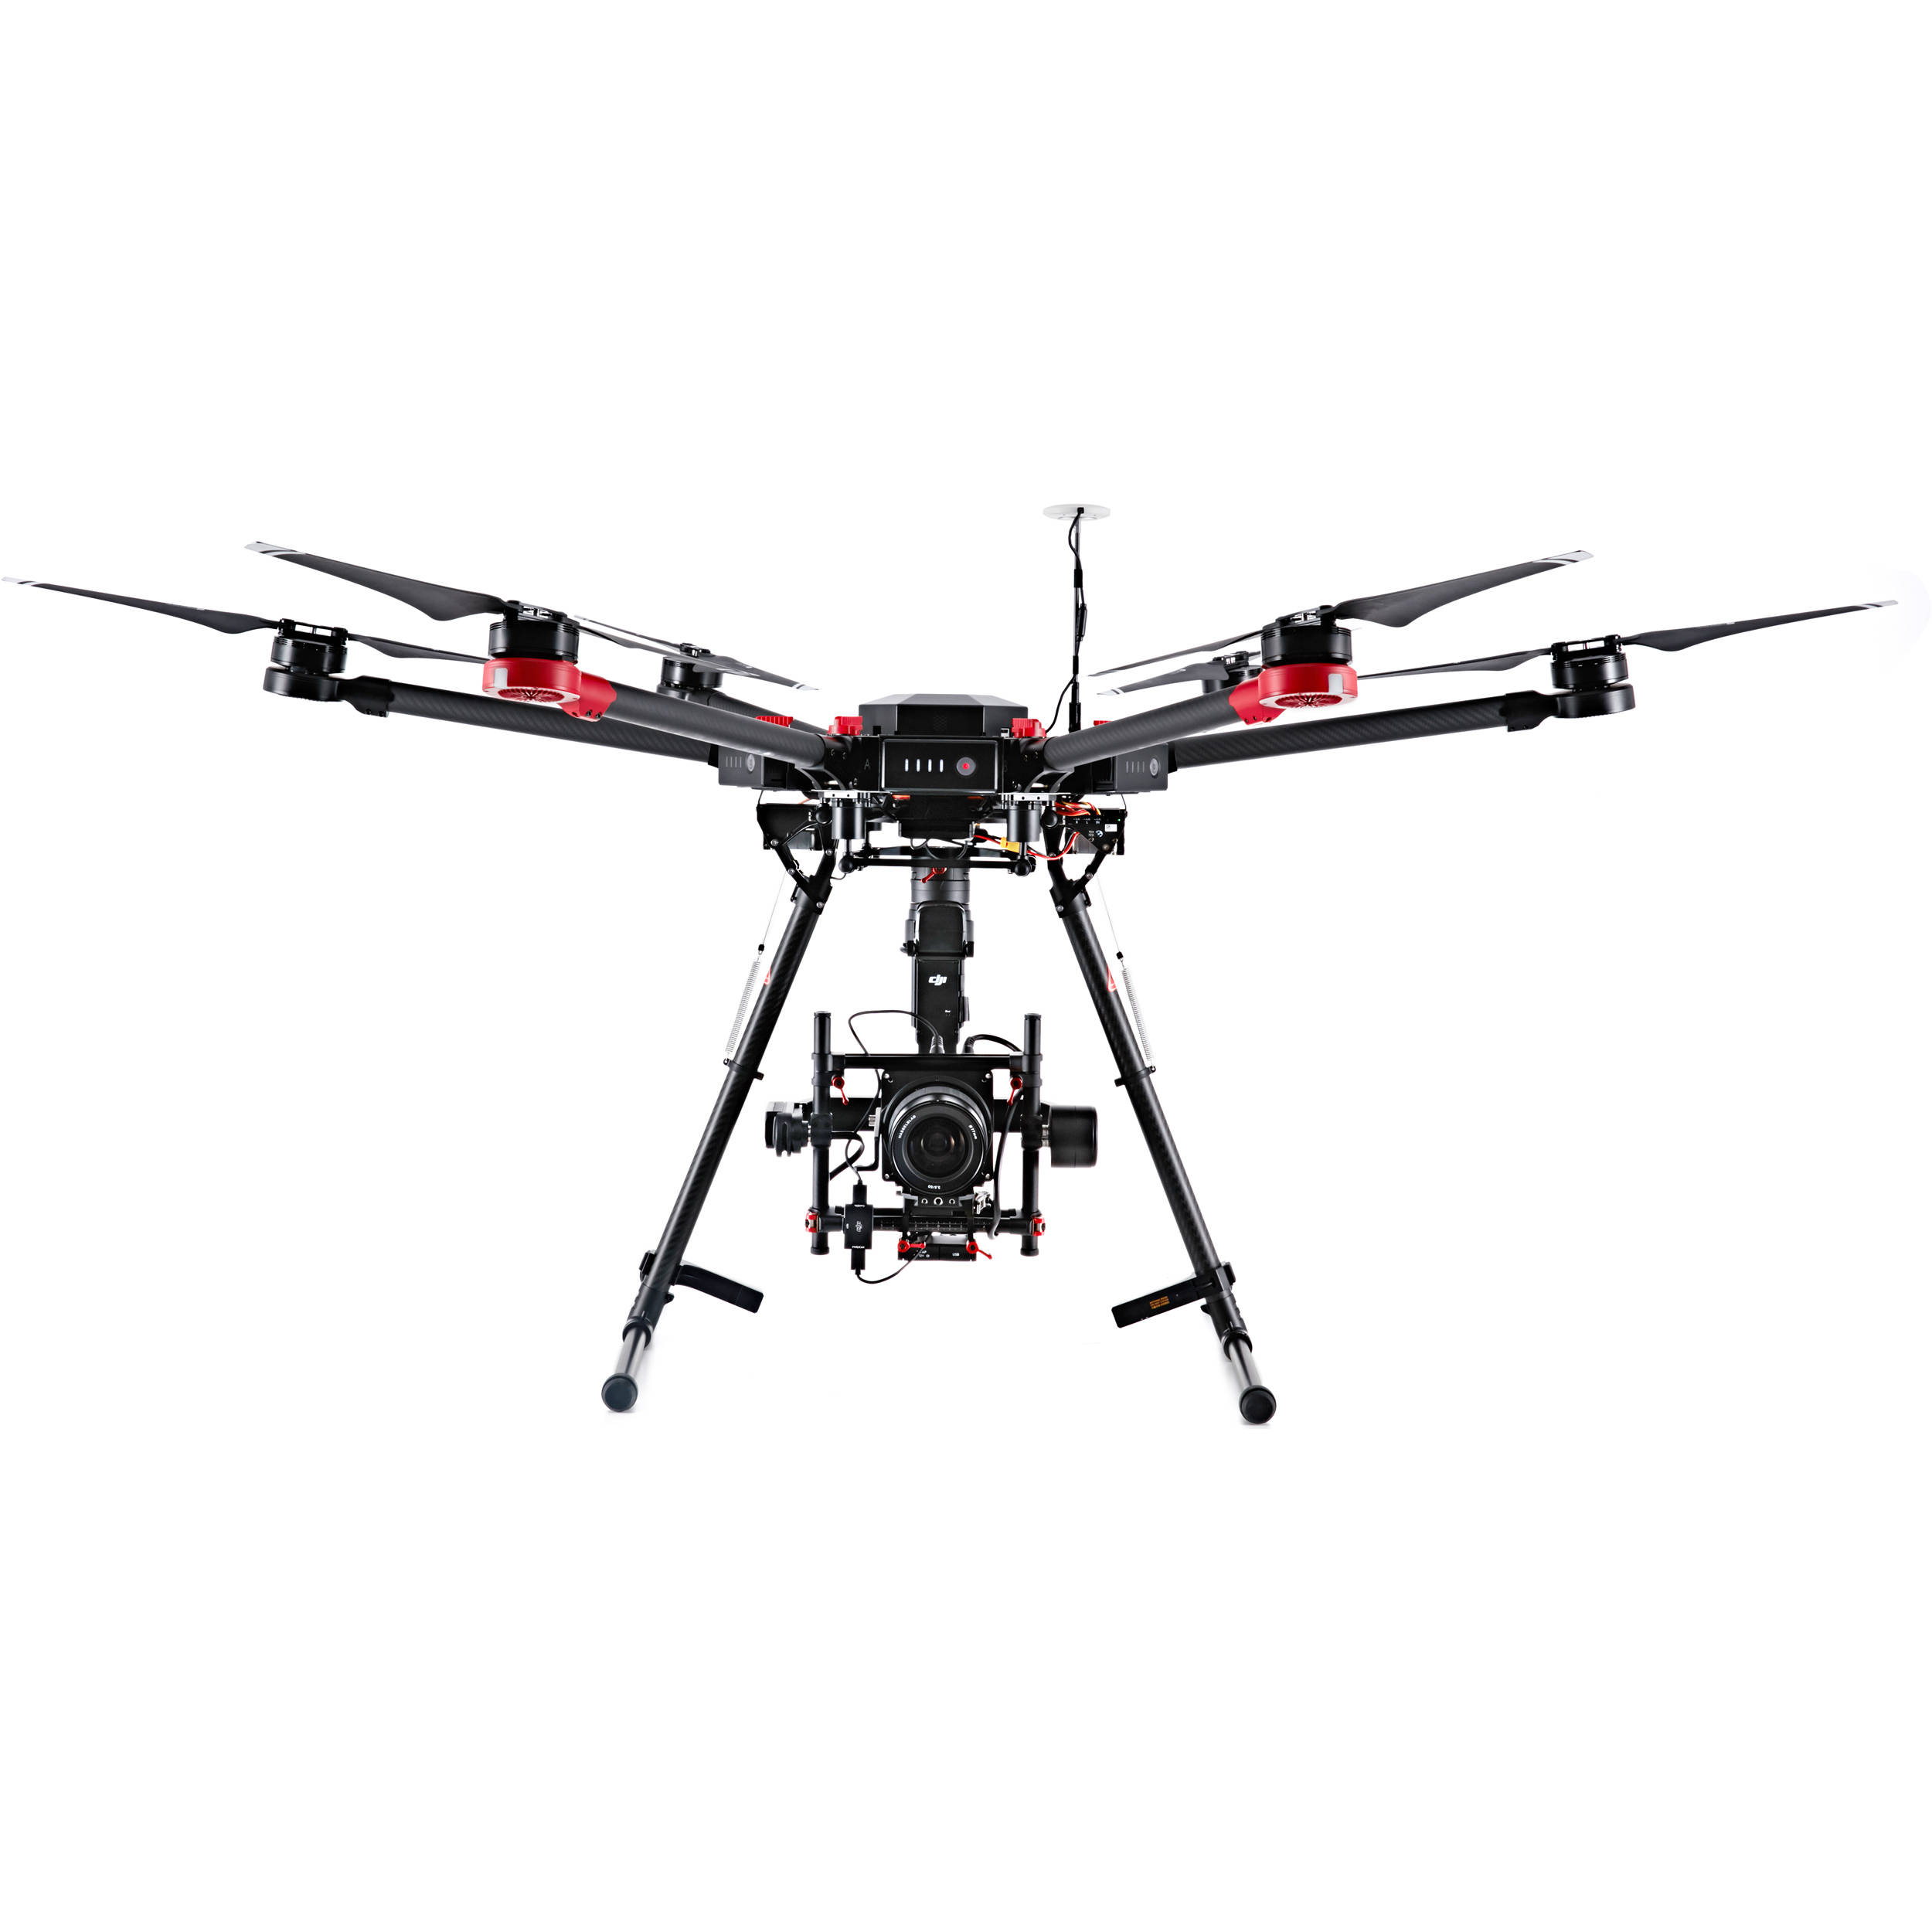 DJI Matrice 600 with Hasselblad A5D-50c Aerial Camera